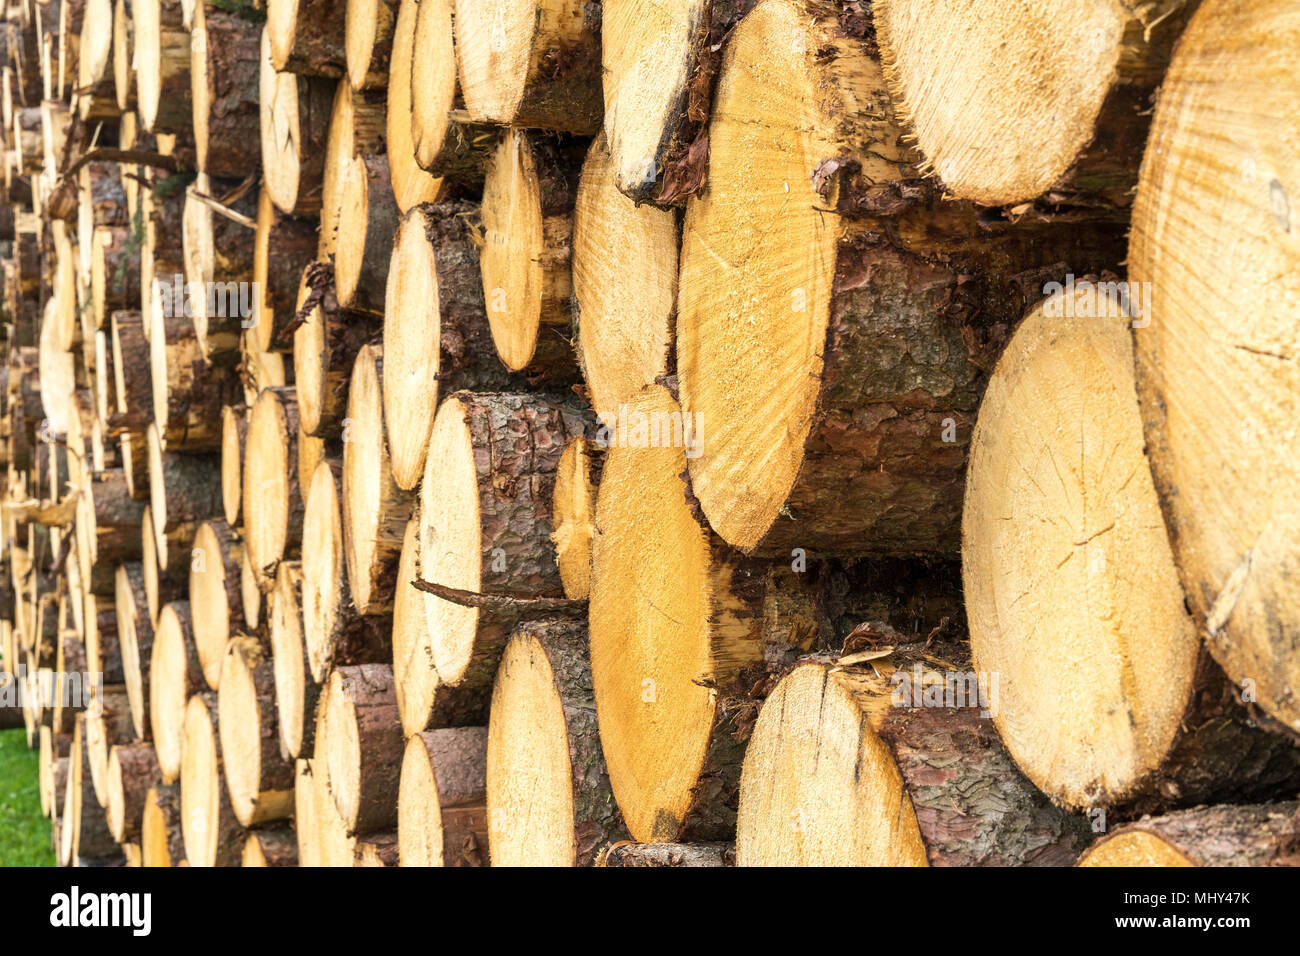 timber harvesting in the bavarian alpes,Germany - Stock Image